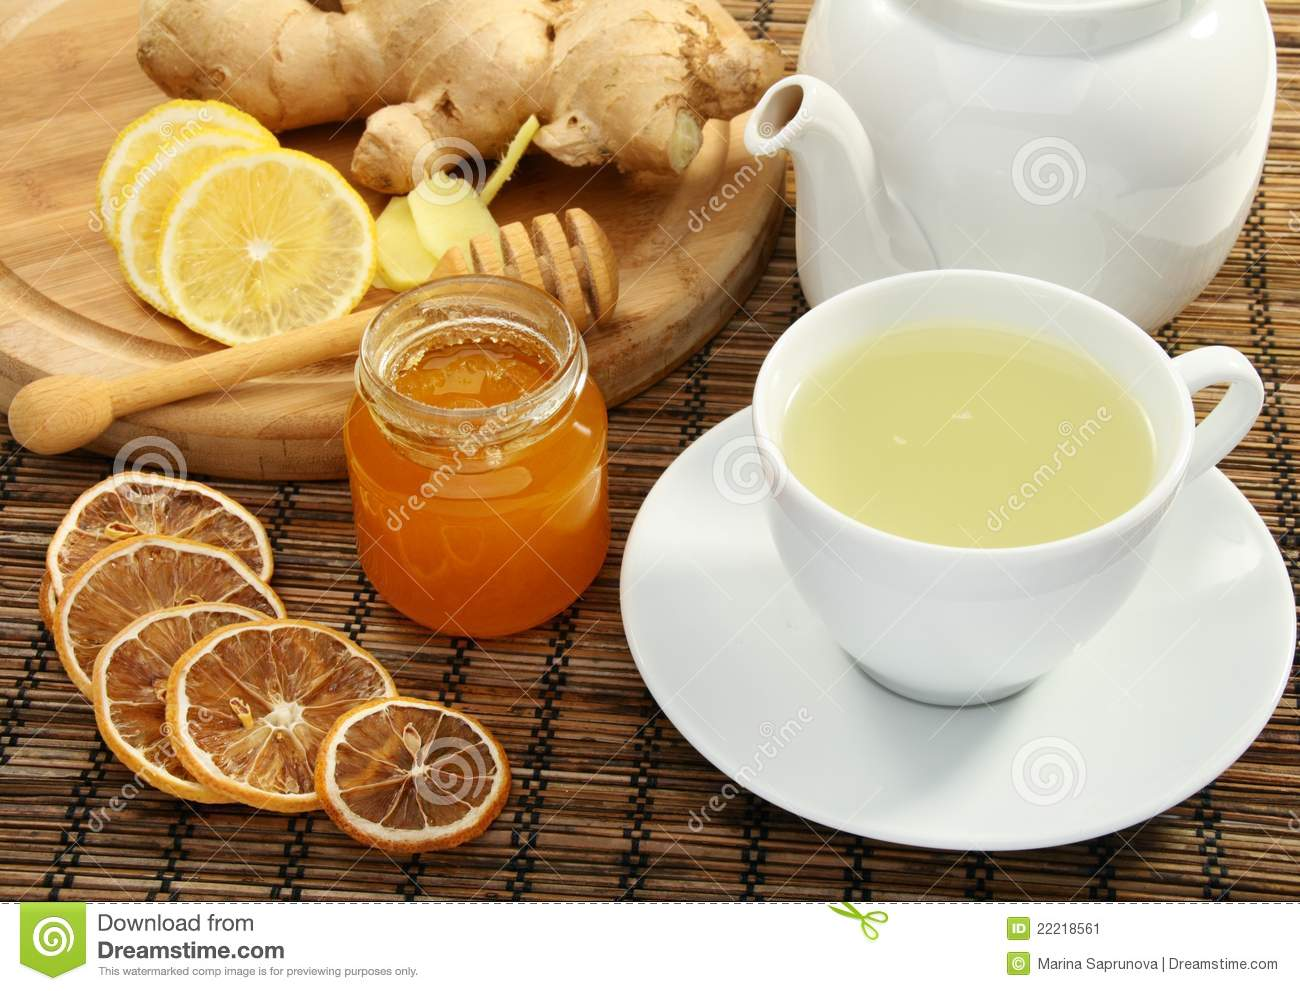 Ginger Tea With Honey And Lemon. Stock Image - Image: 22218561